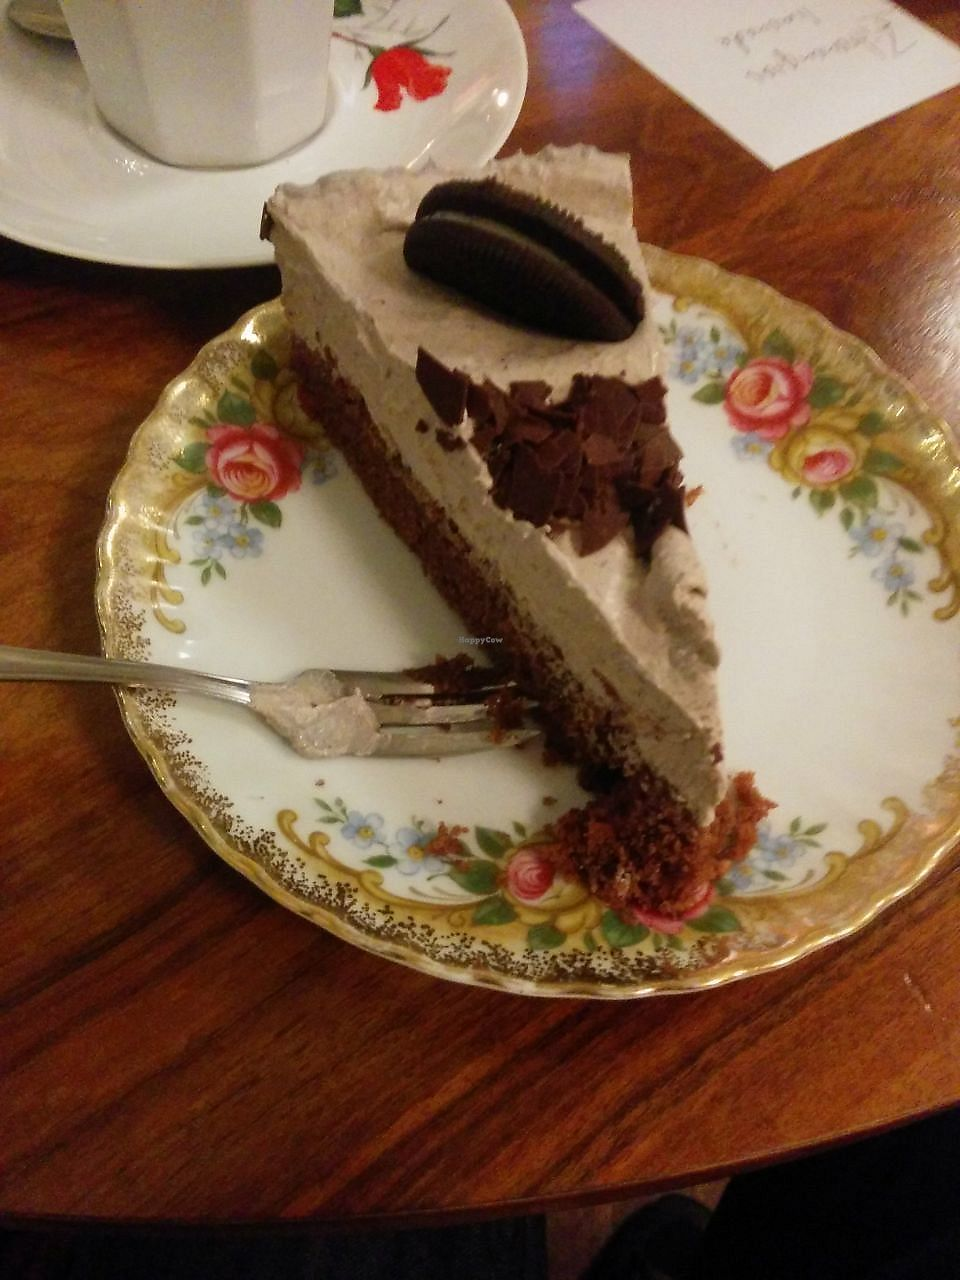 "Photo of V-Cake Cafe  by <a href=""/members/profile/FlokiTheCat"">FlokiTheCat</a> <br/>Oreo cake <br/> December 11, 2017  - <a href='/contact/abuse/image/40824/334765'>Report</a>"